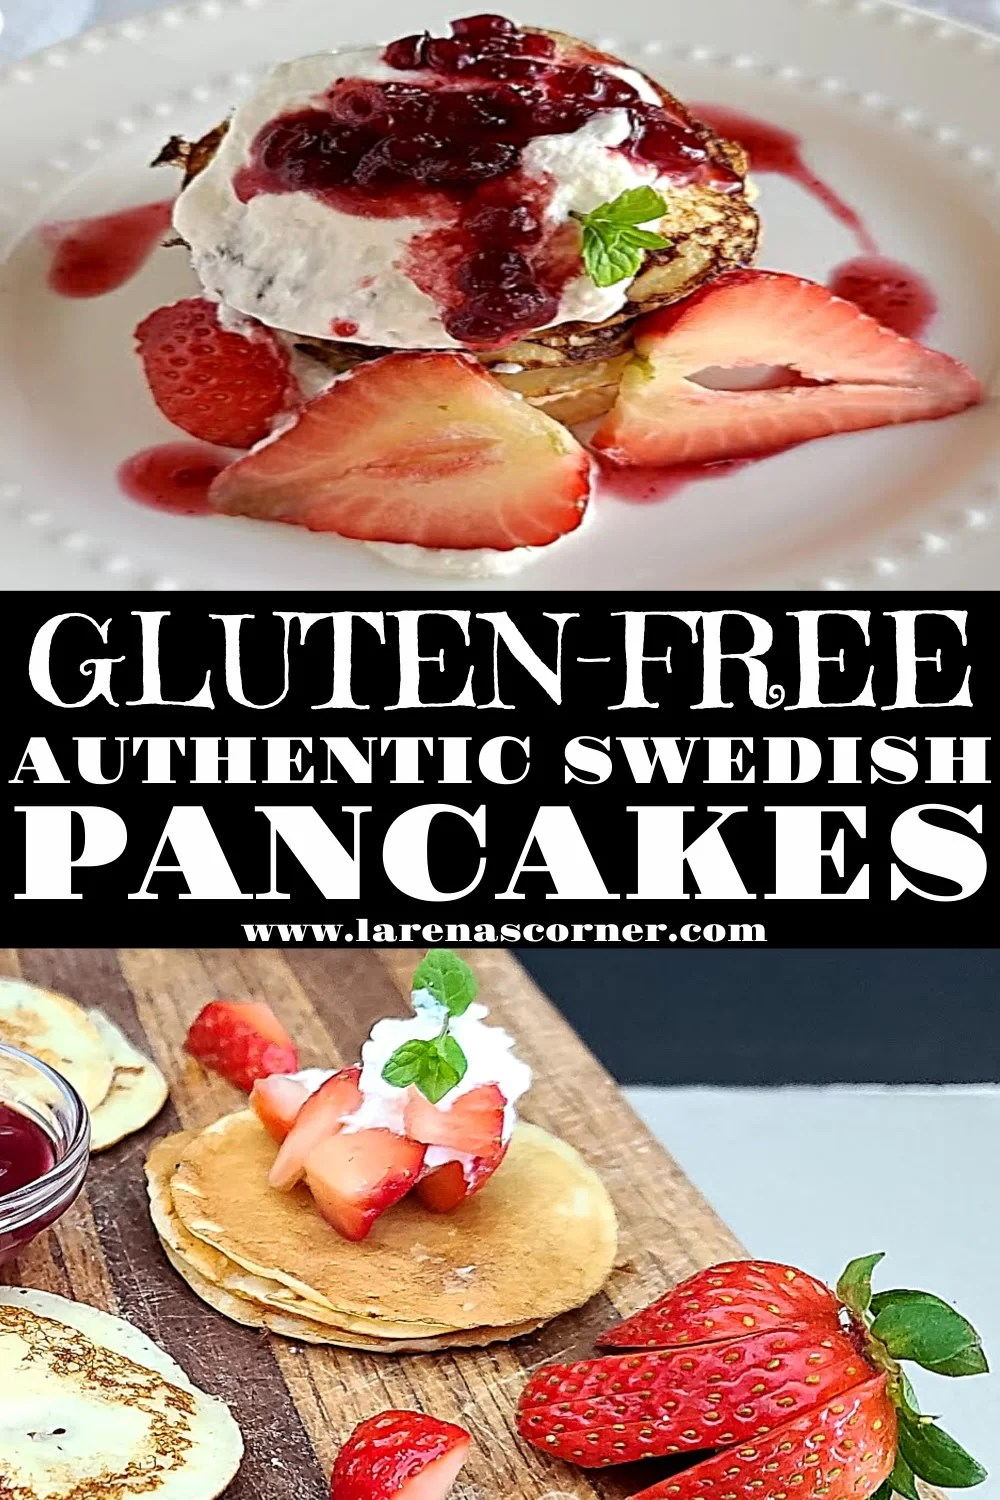 Two Pictures of Swedish Pancakes